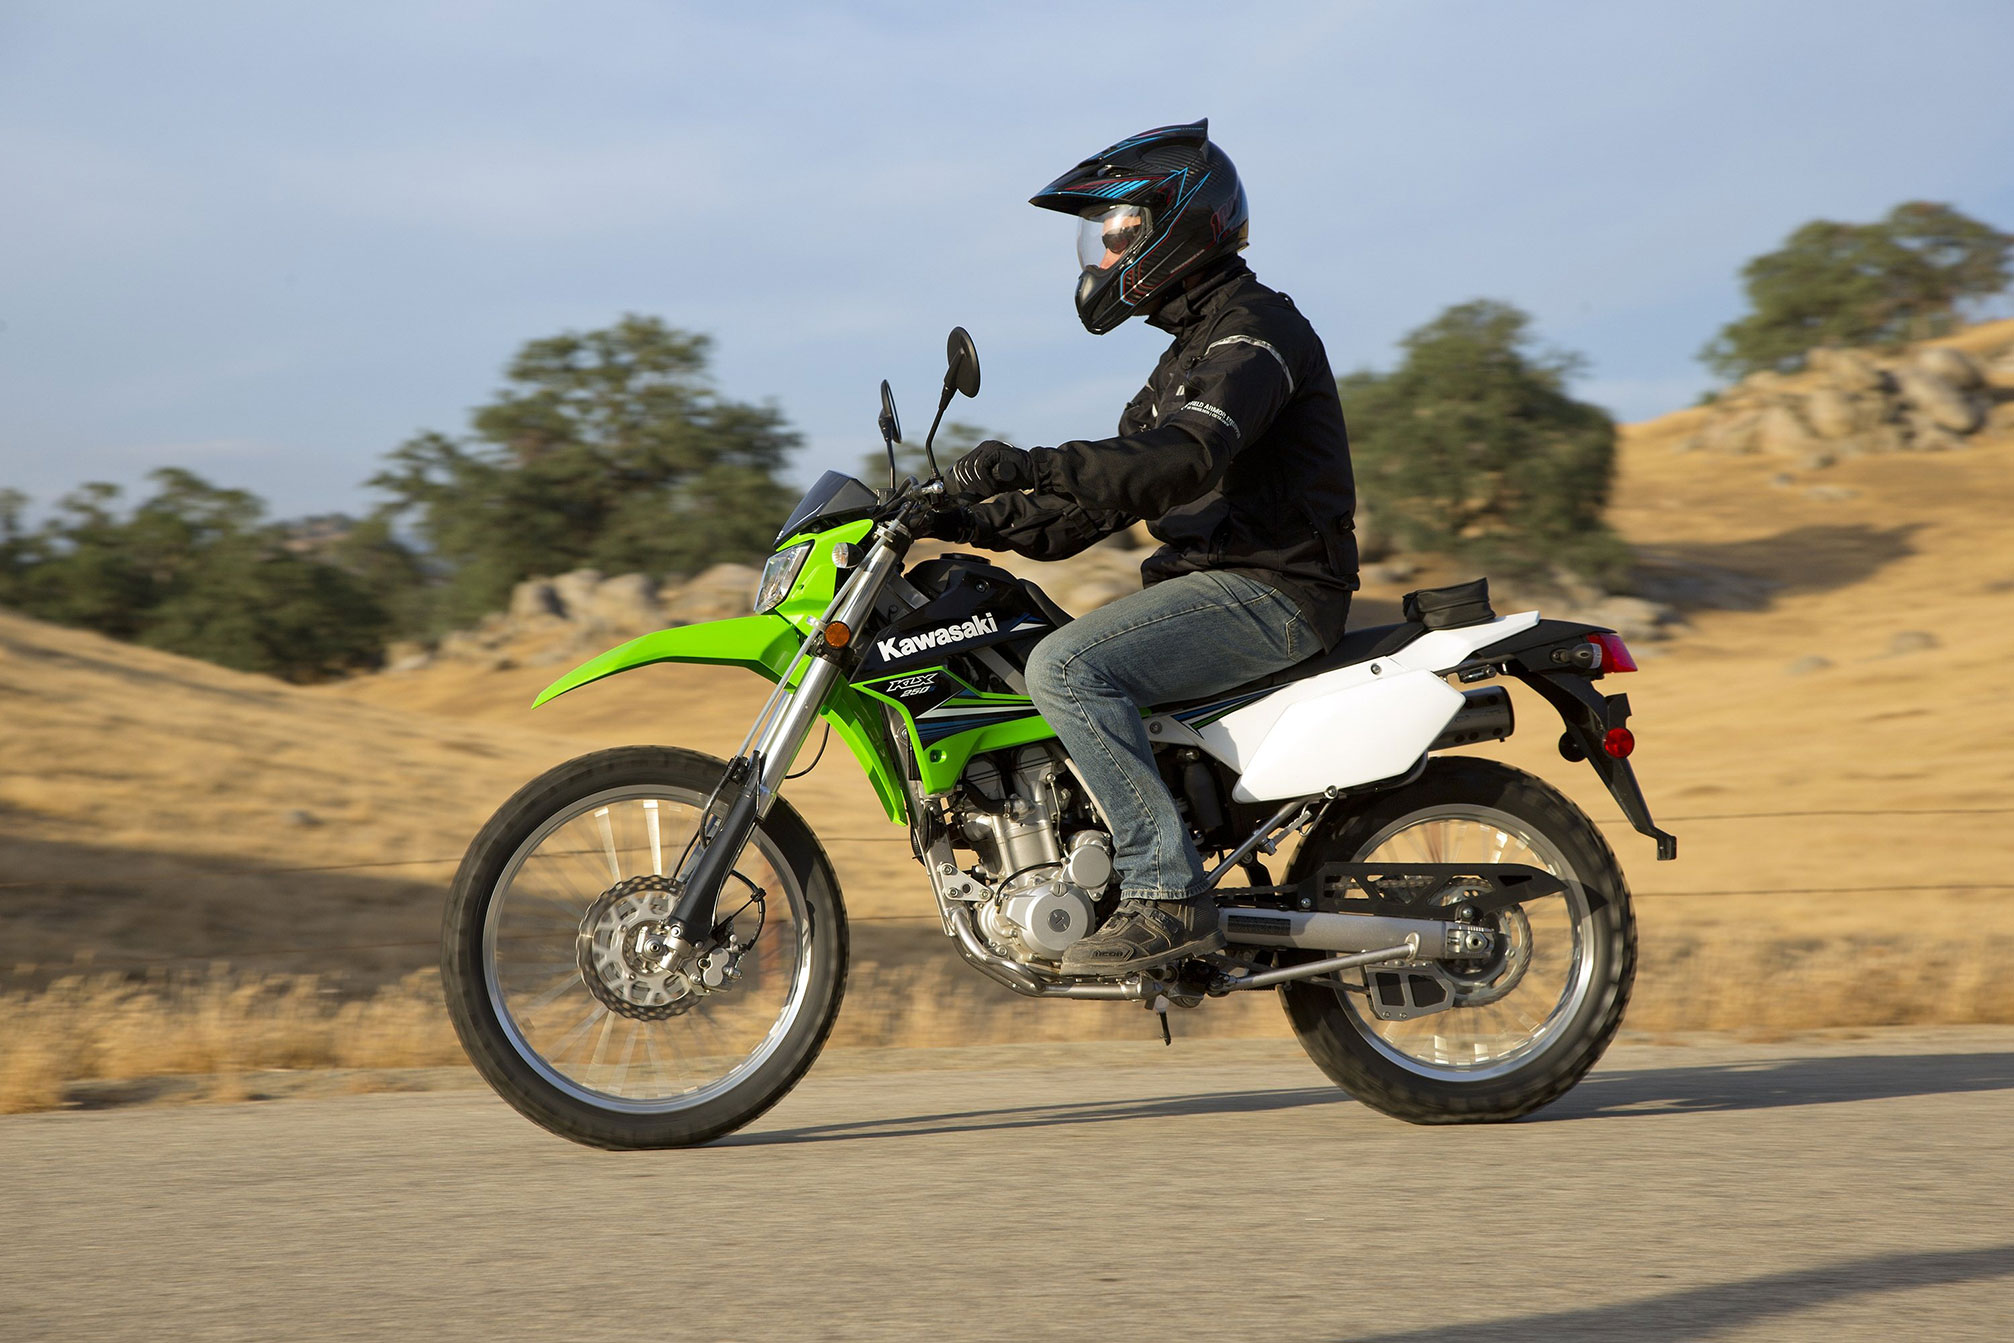 kawasaki klx250s 2013 2014 autoevolution. Black Bedroom Furniture Sets. Home Design Ideas